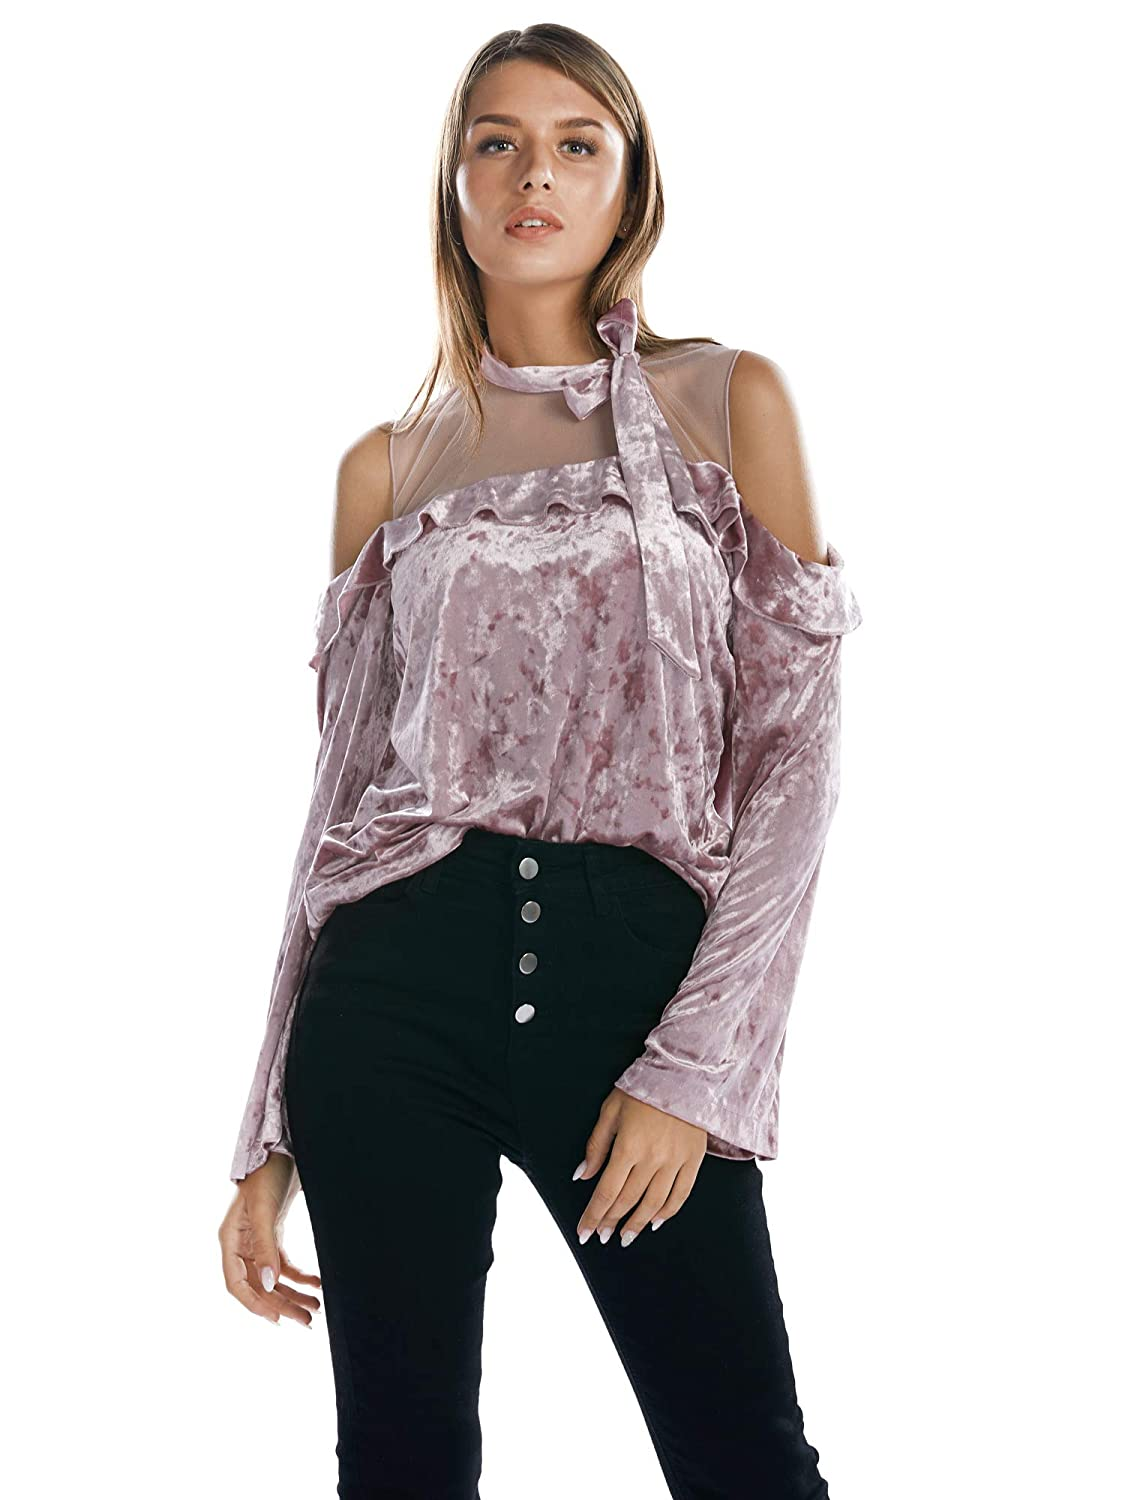 BARGOOS Women Cold Shoulder Velvet Tops Hollow Out See Through Velour Shirts Frills Ruffle Sleeve Bowknot Mesh Pullover Shirt Tops